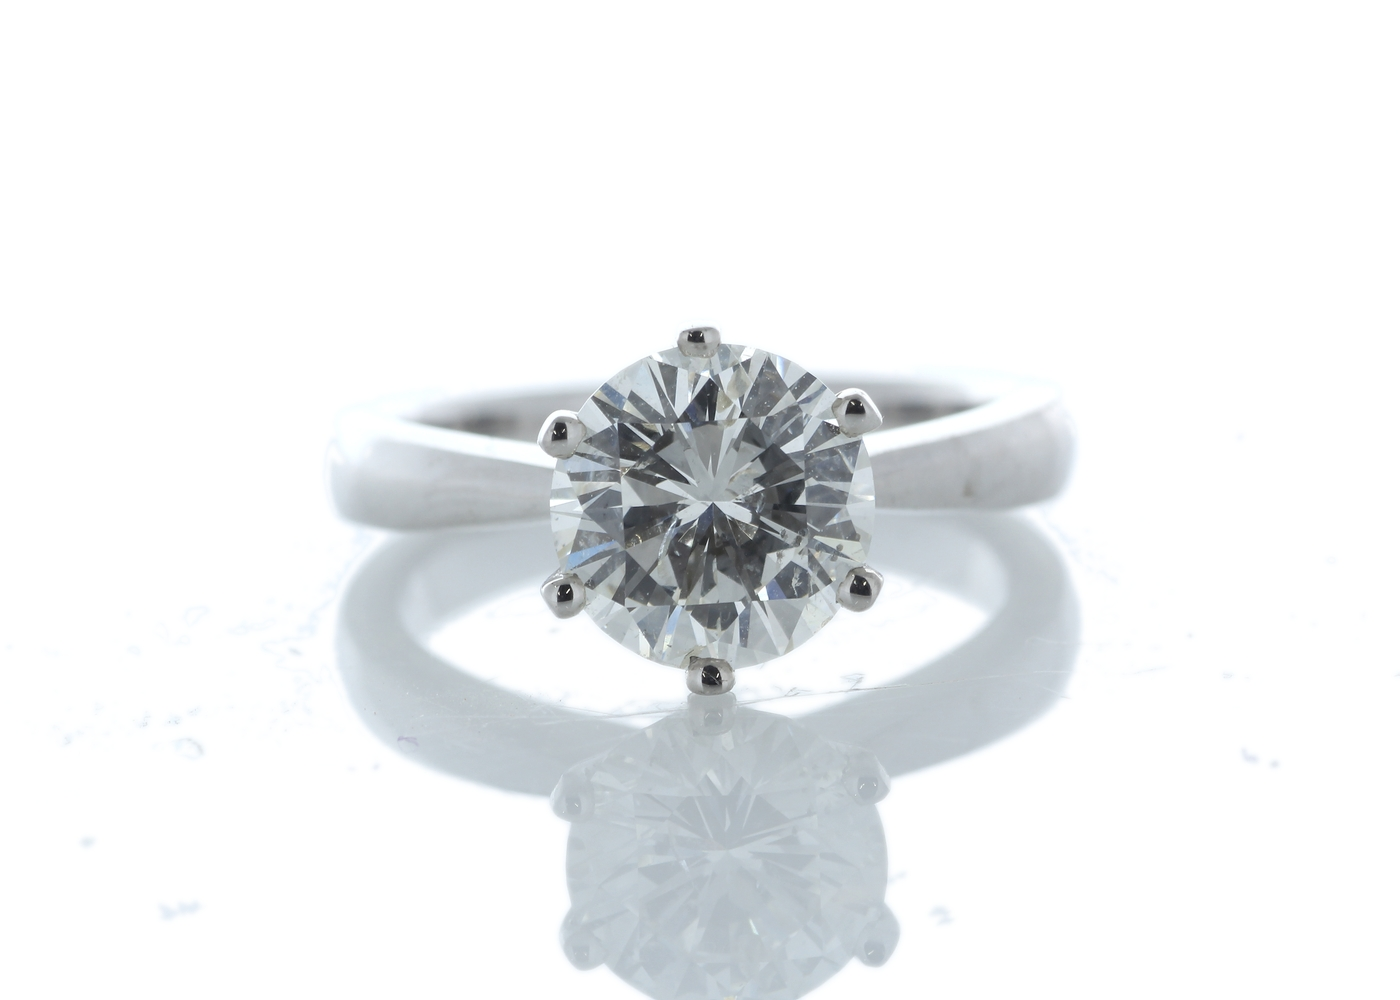 Lot 15 - 18ct White Gold Prong Set Diamond Ring 2.35 Carats